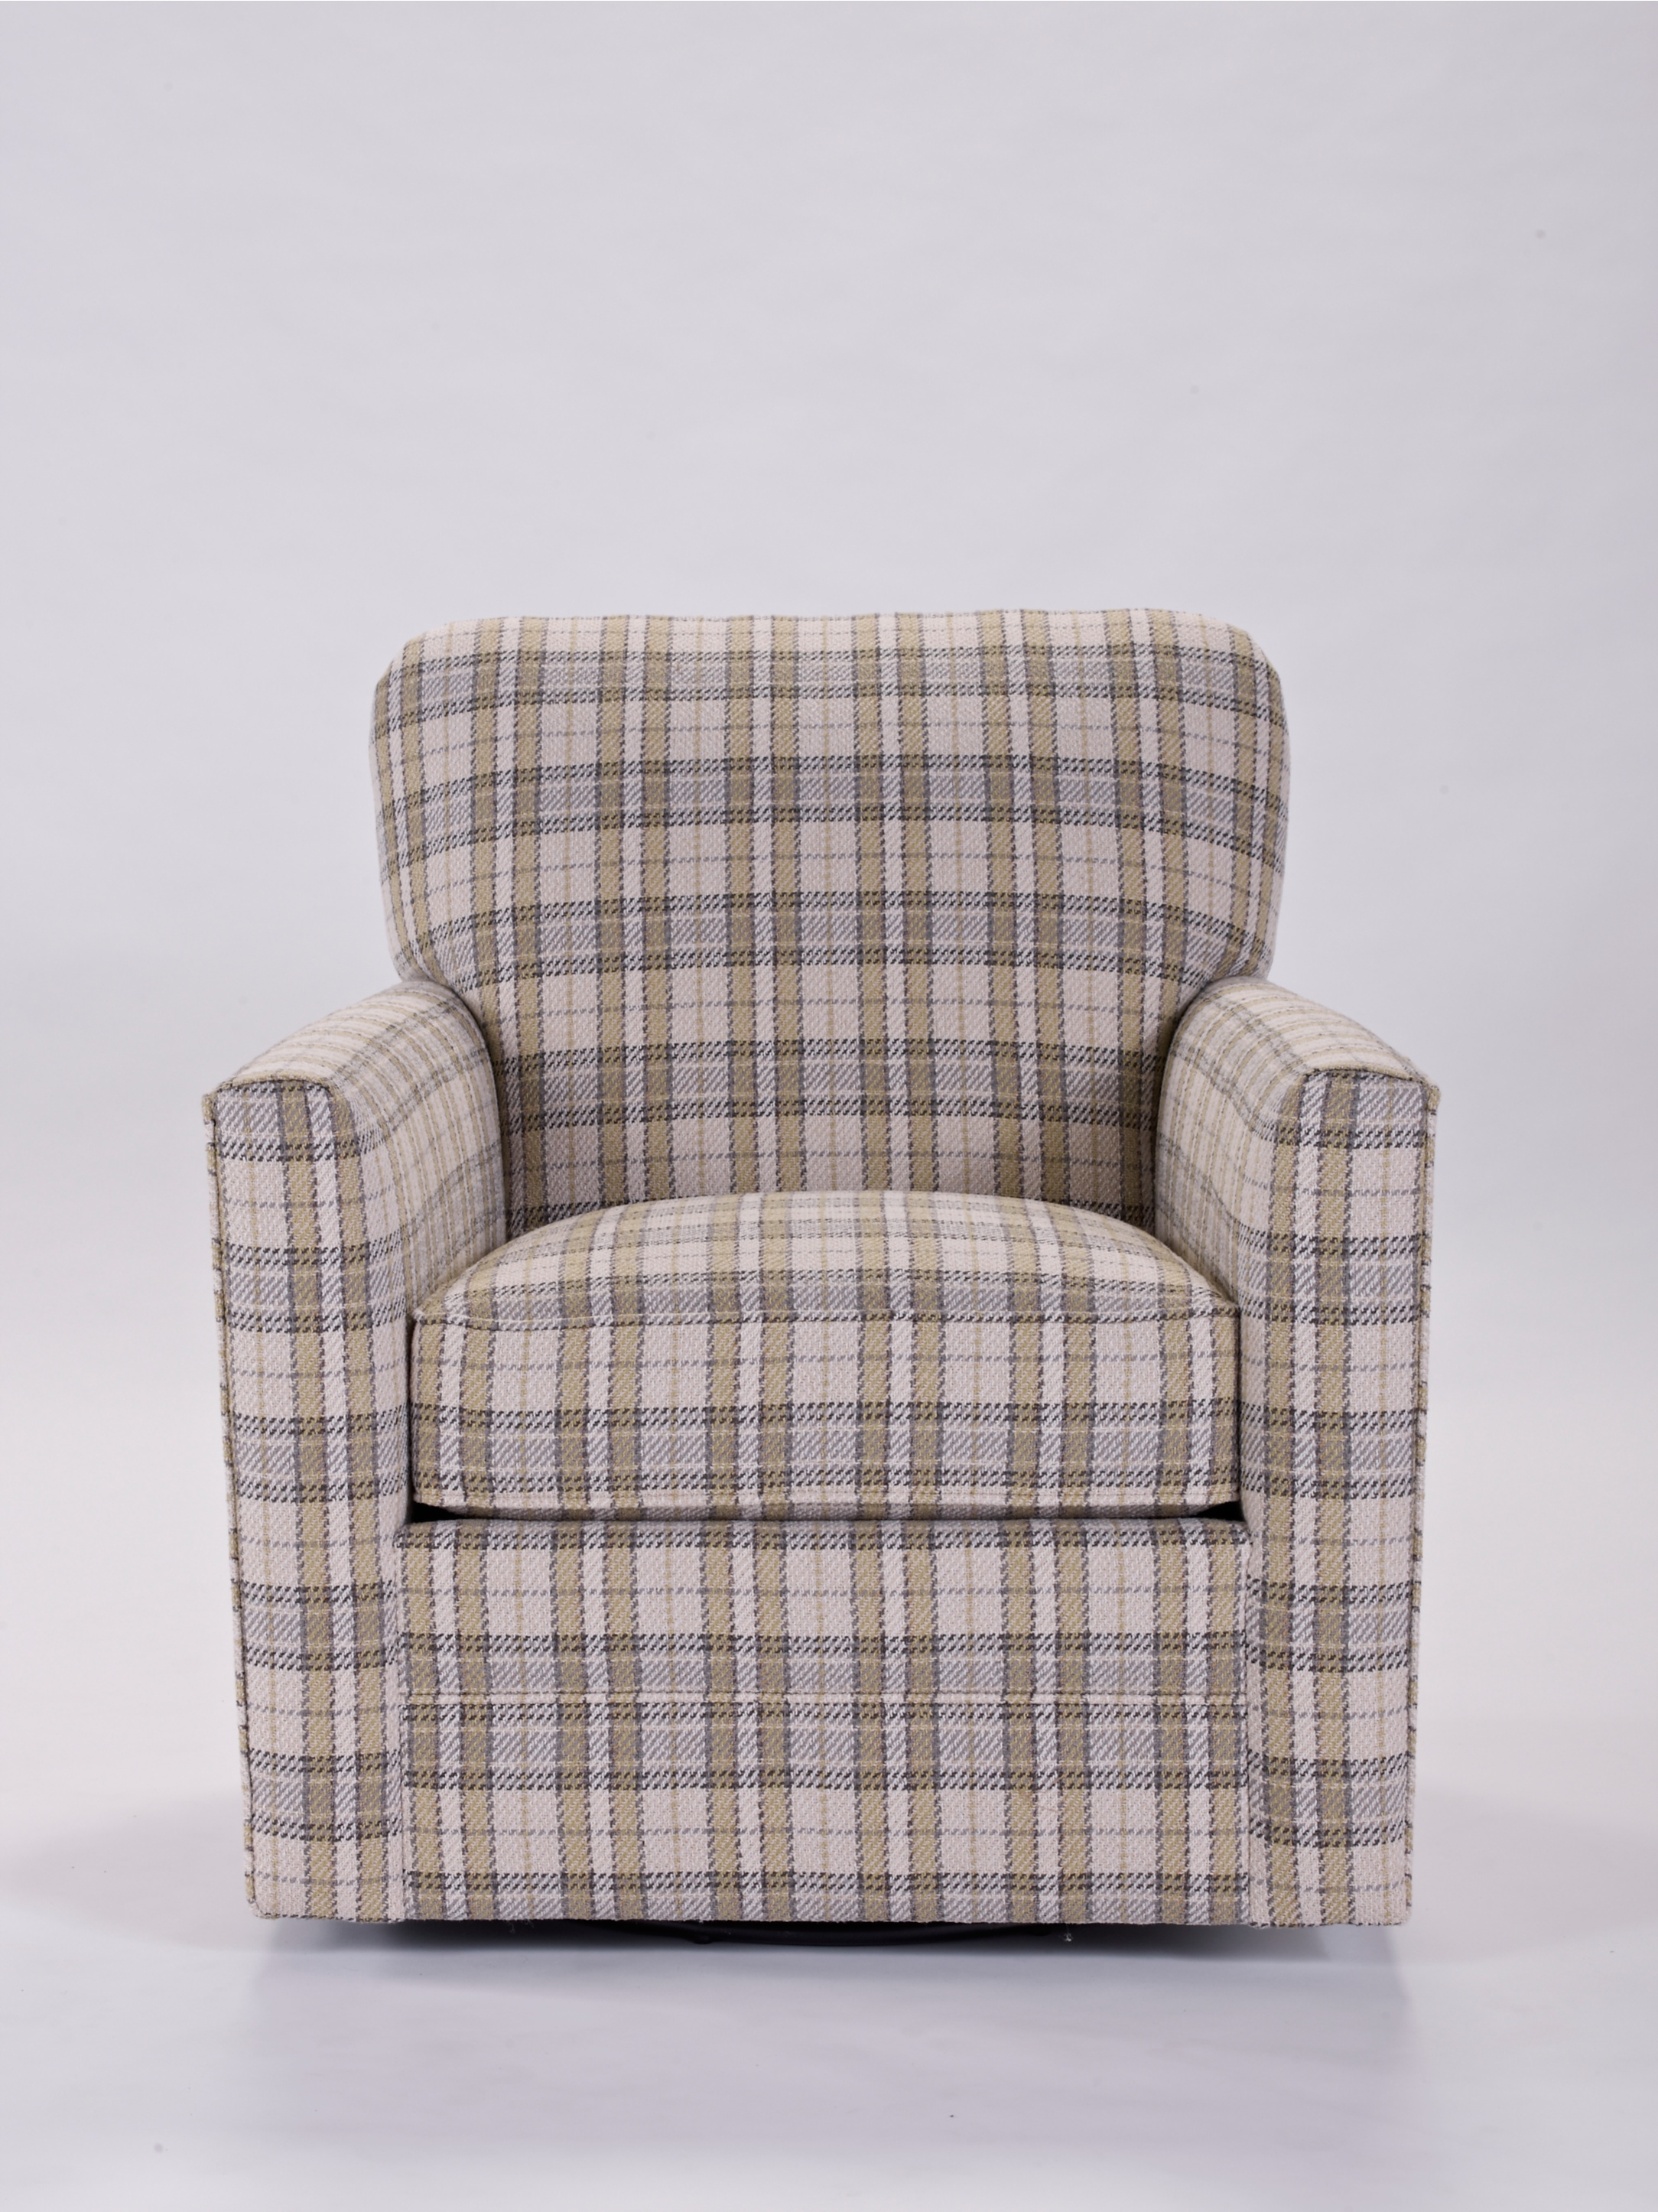 Peachy Becks 9049 8 Swivel Chair 9049 8 Sofas And Sectionals Pdpeps Interior Chair Design Pdpepsorg